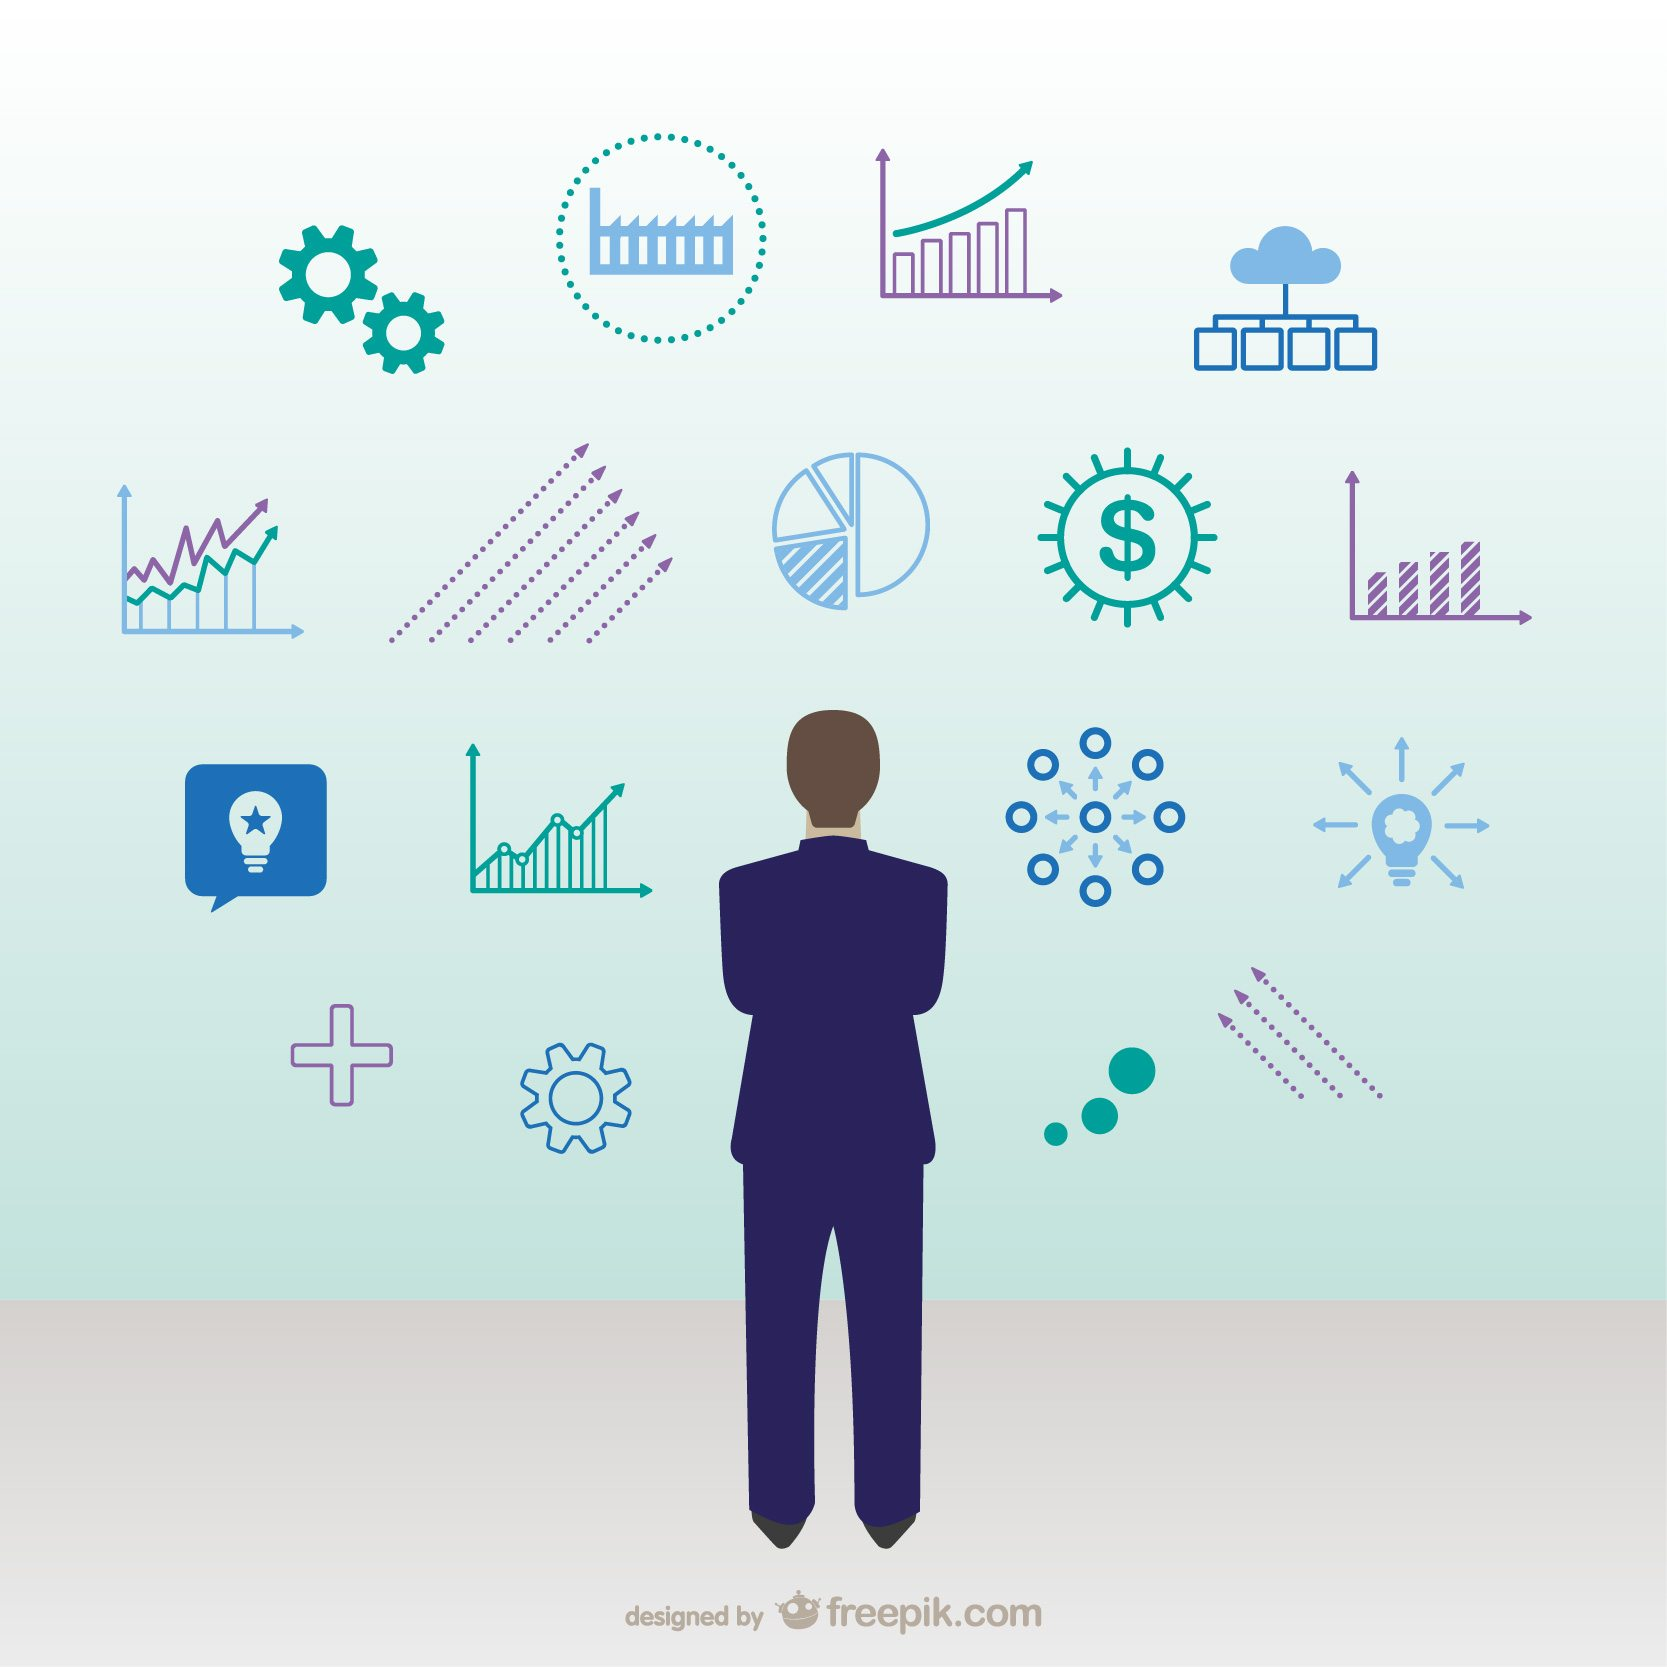 business icons 150ppp-01